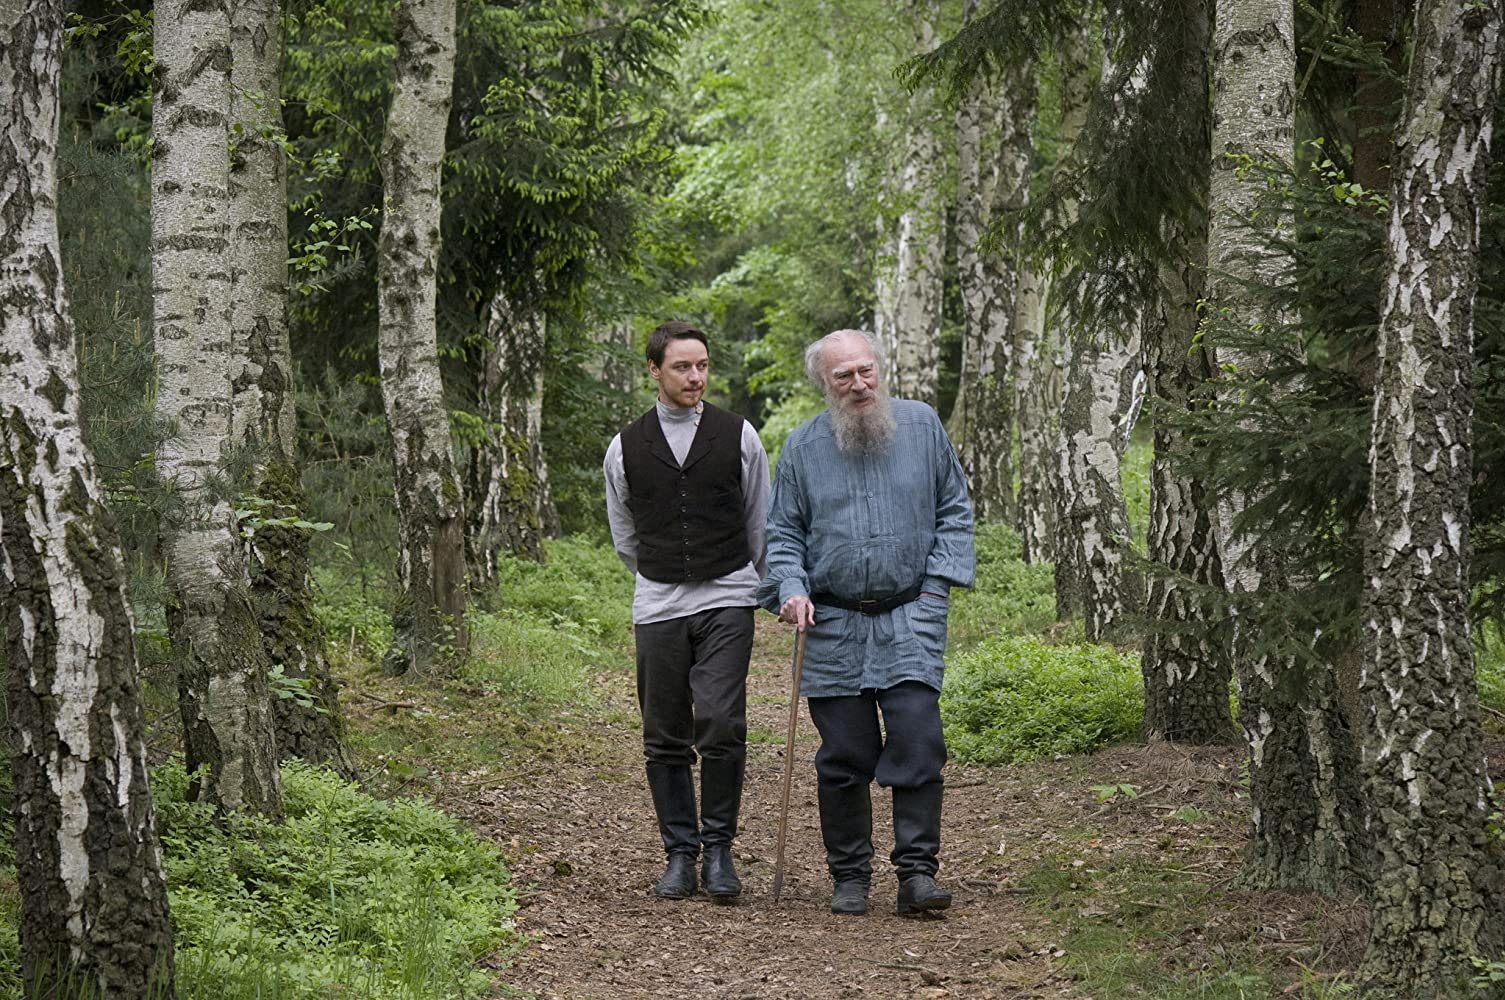 Christopher Plummer and James McAvoy in The Last Station (2009)